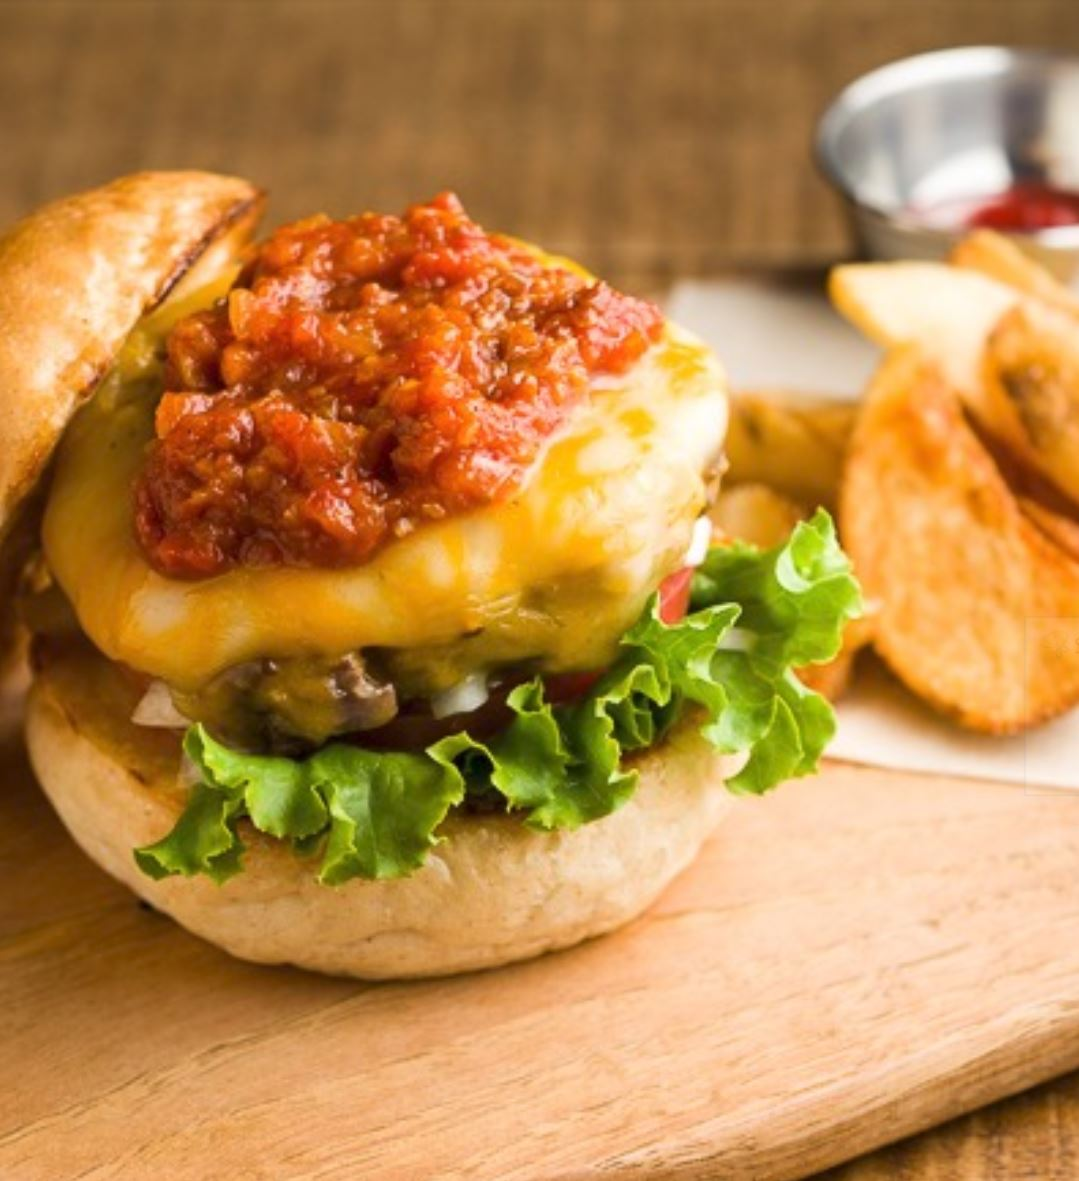 GARLIC TOMATO & CHEESE BURGER